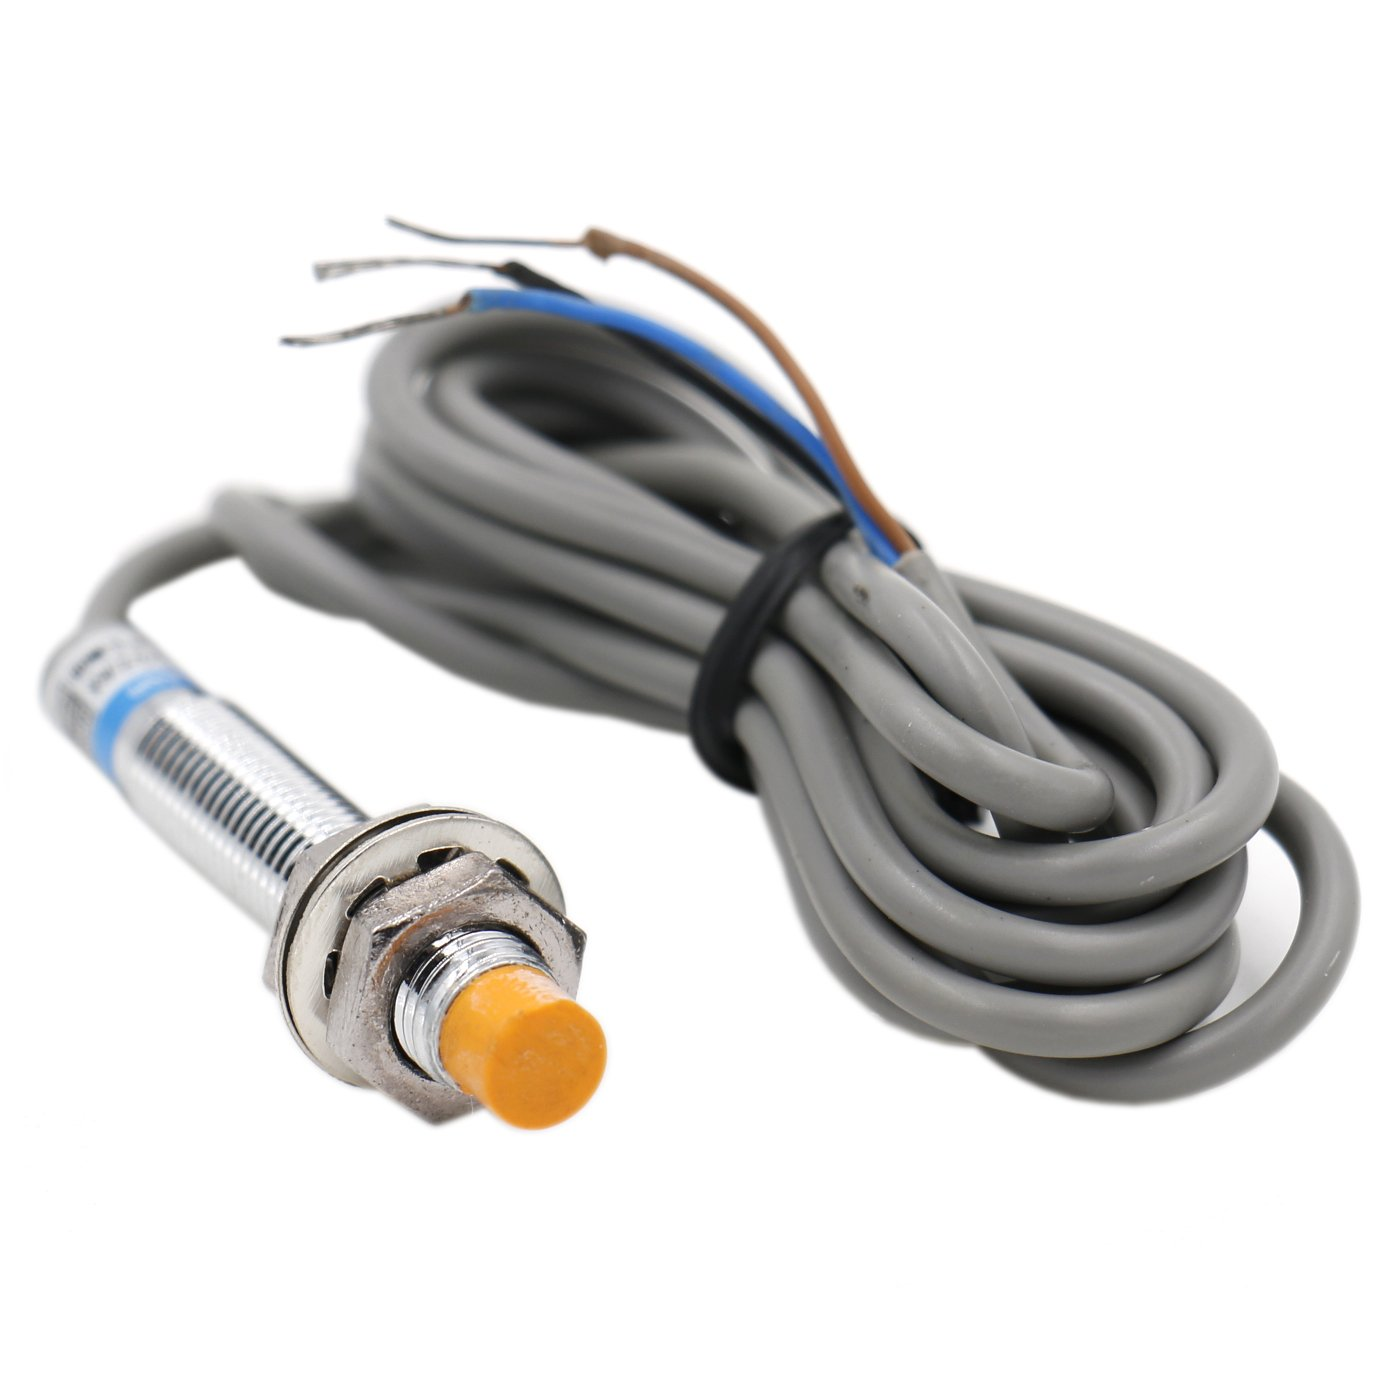 Heschen inductive proximity sensor switch LJ8A3-2-Z/AX detector 2 mm 6-36 VDC 200mA NPN normally closed(NC) 3 wire Heschen Electric Co.Ltd HS-LJ8A3-2-Z/AX